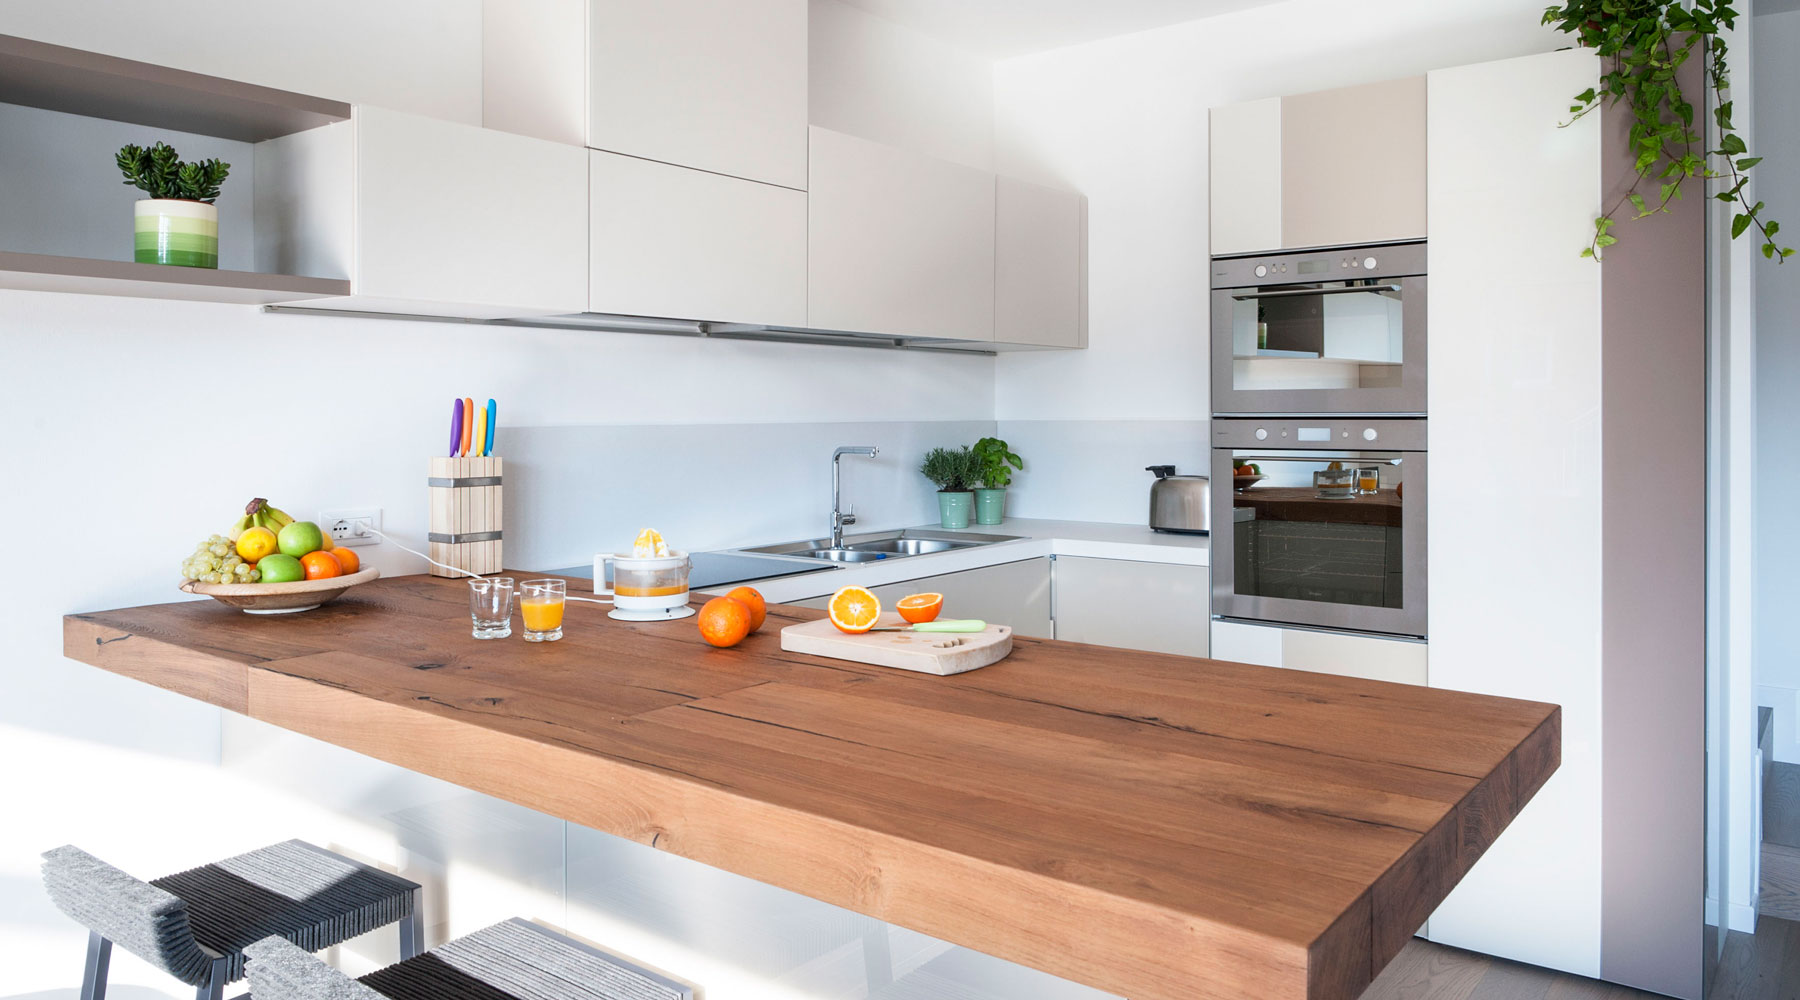 36e8 wildwood bruno interni for Cucine di design